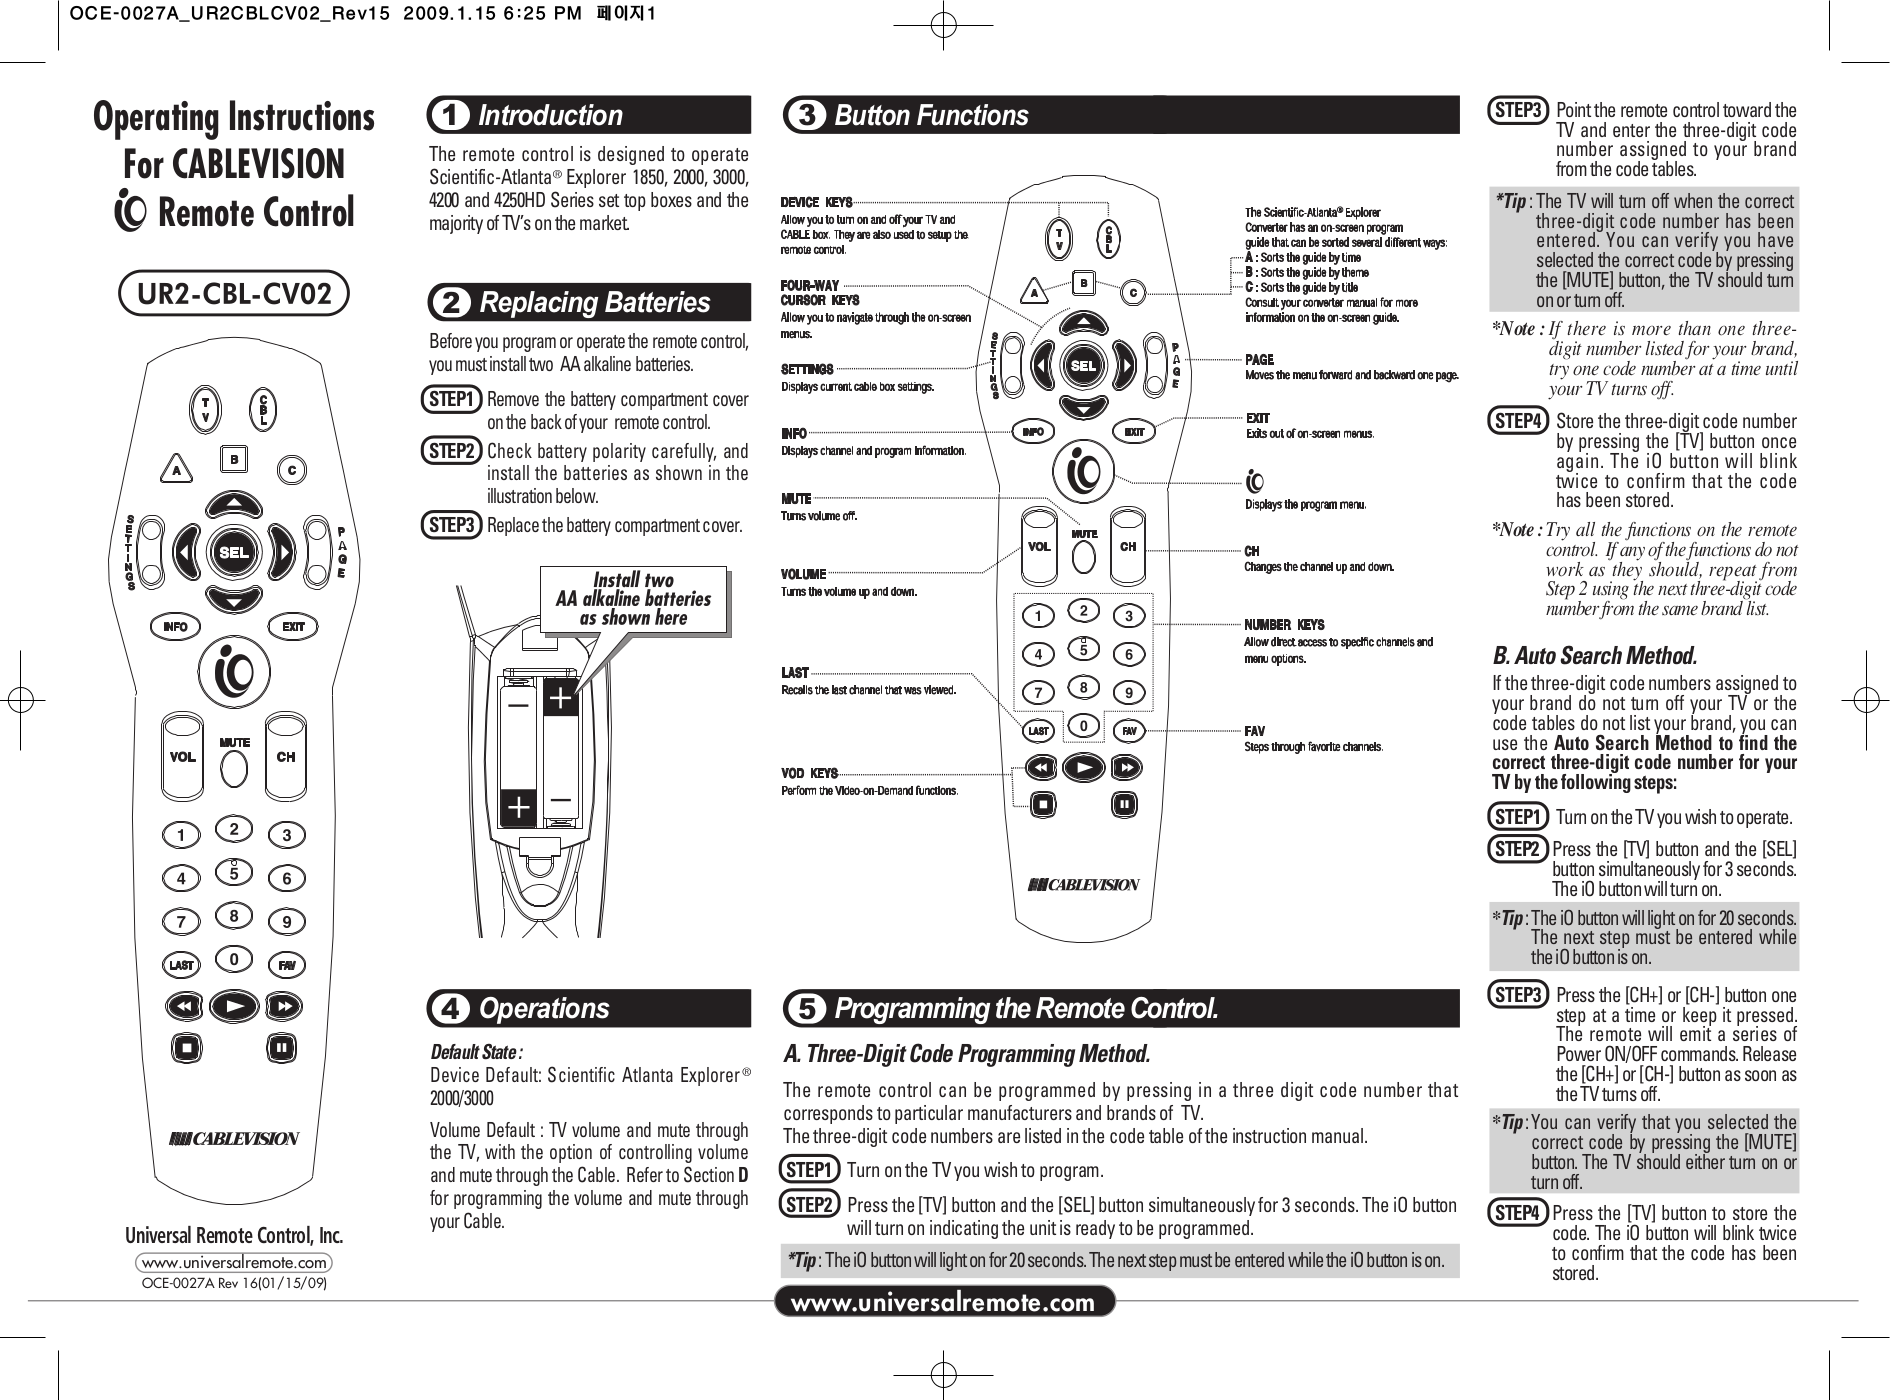 Comcast Dvr Manual